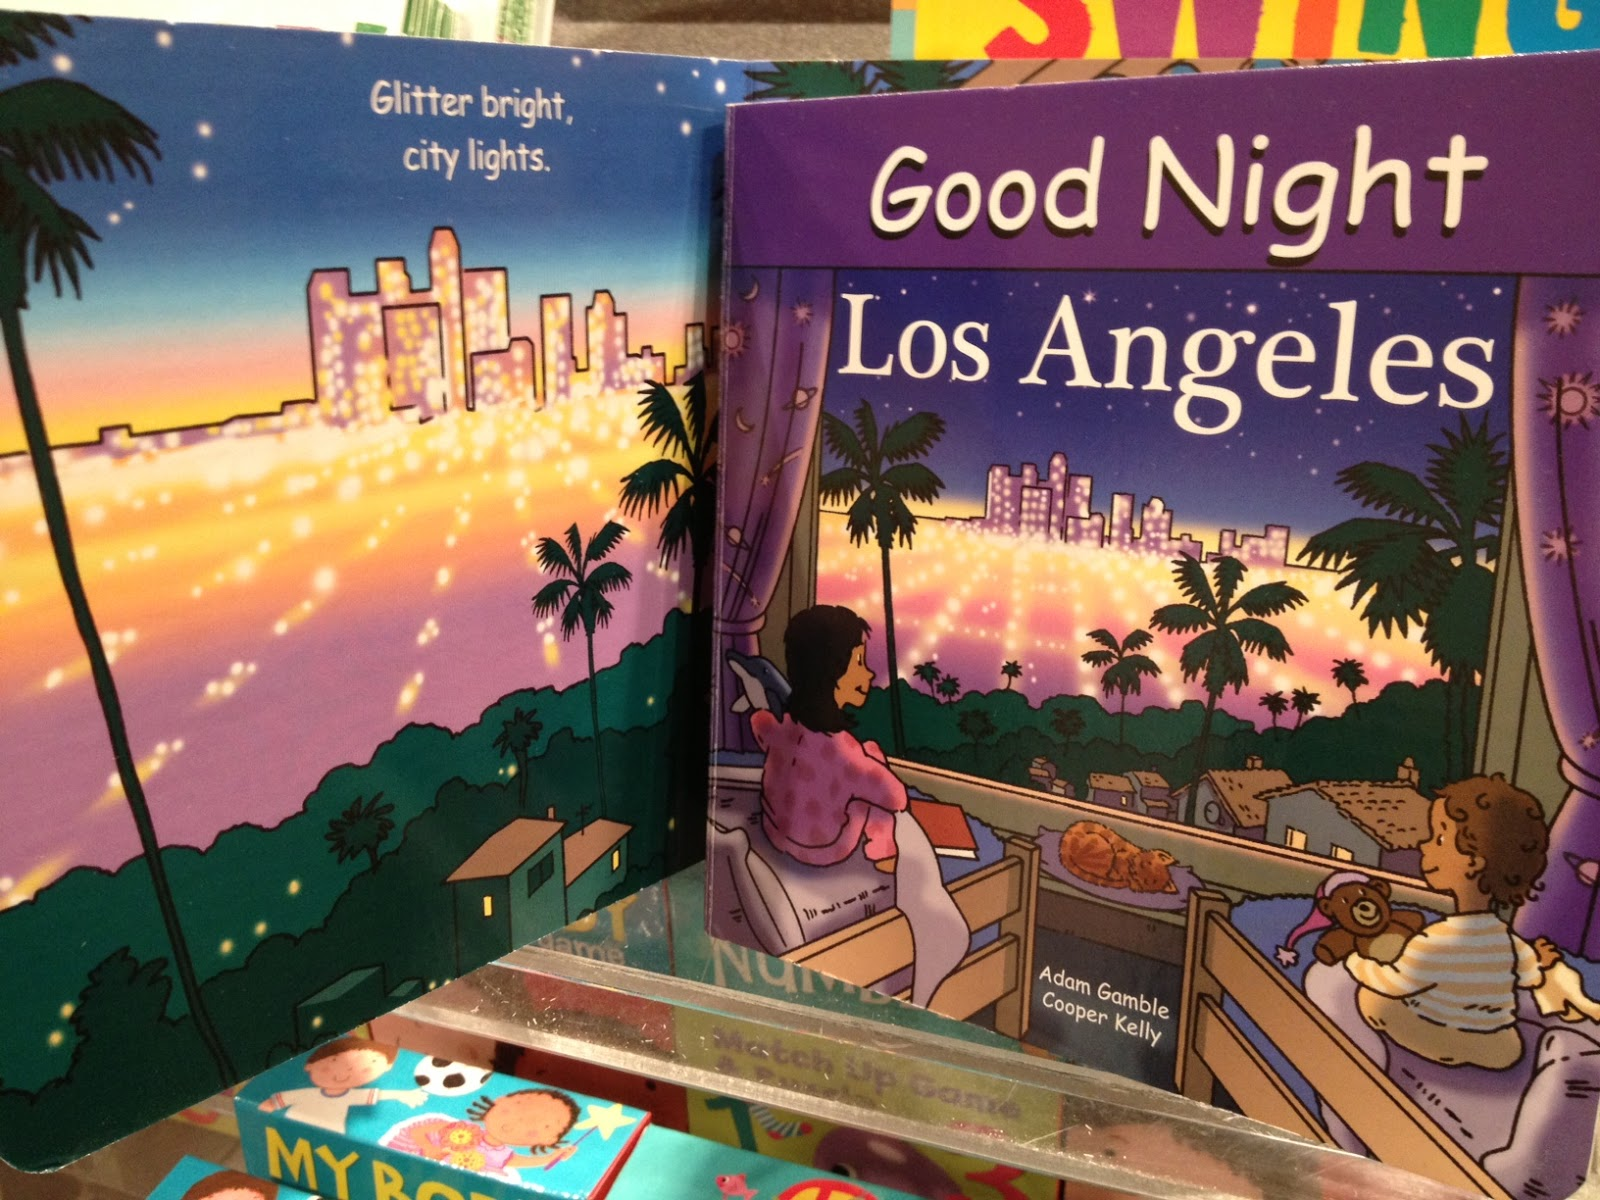 Cityscape from the book Good Night Los Angeles